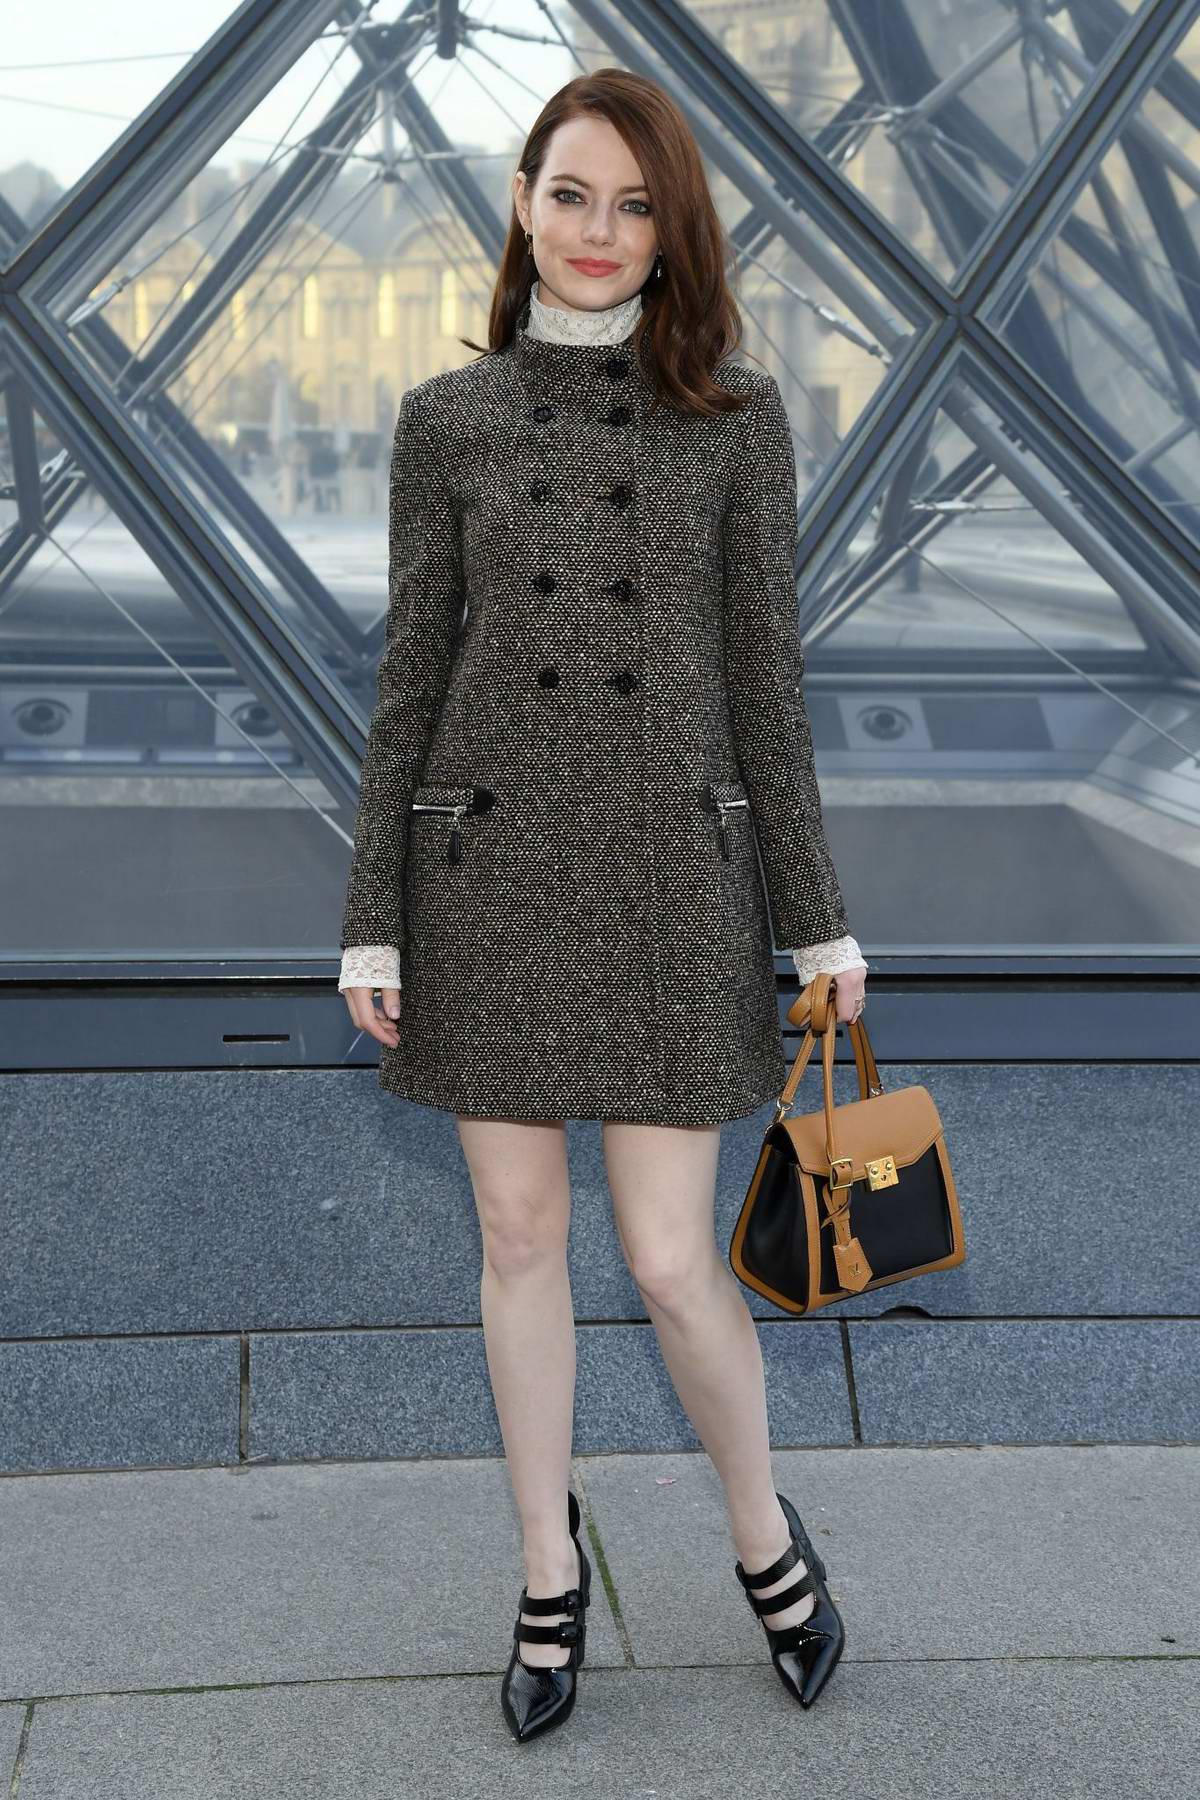 Emma Stone attends the Louis Vuitton show during Paris Fashion Week F/W 2019/20 in Paris, France